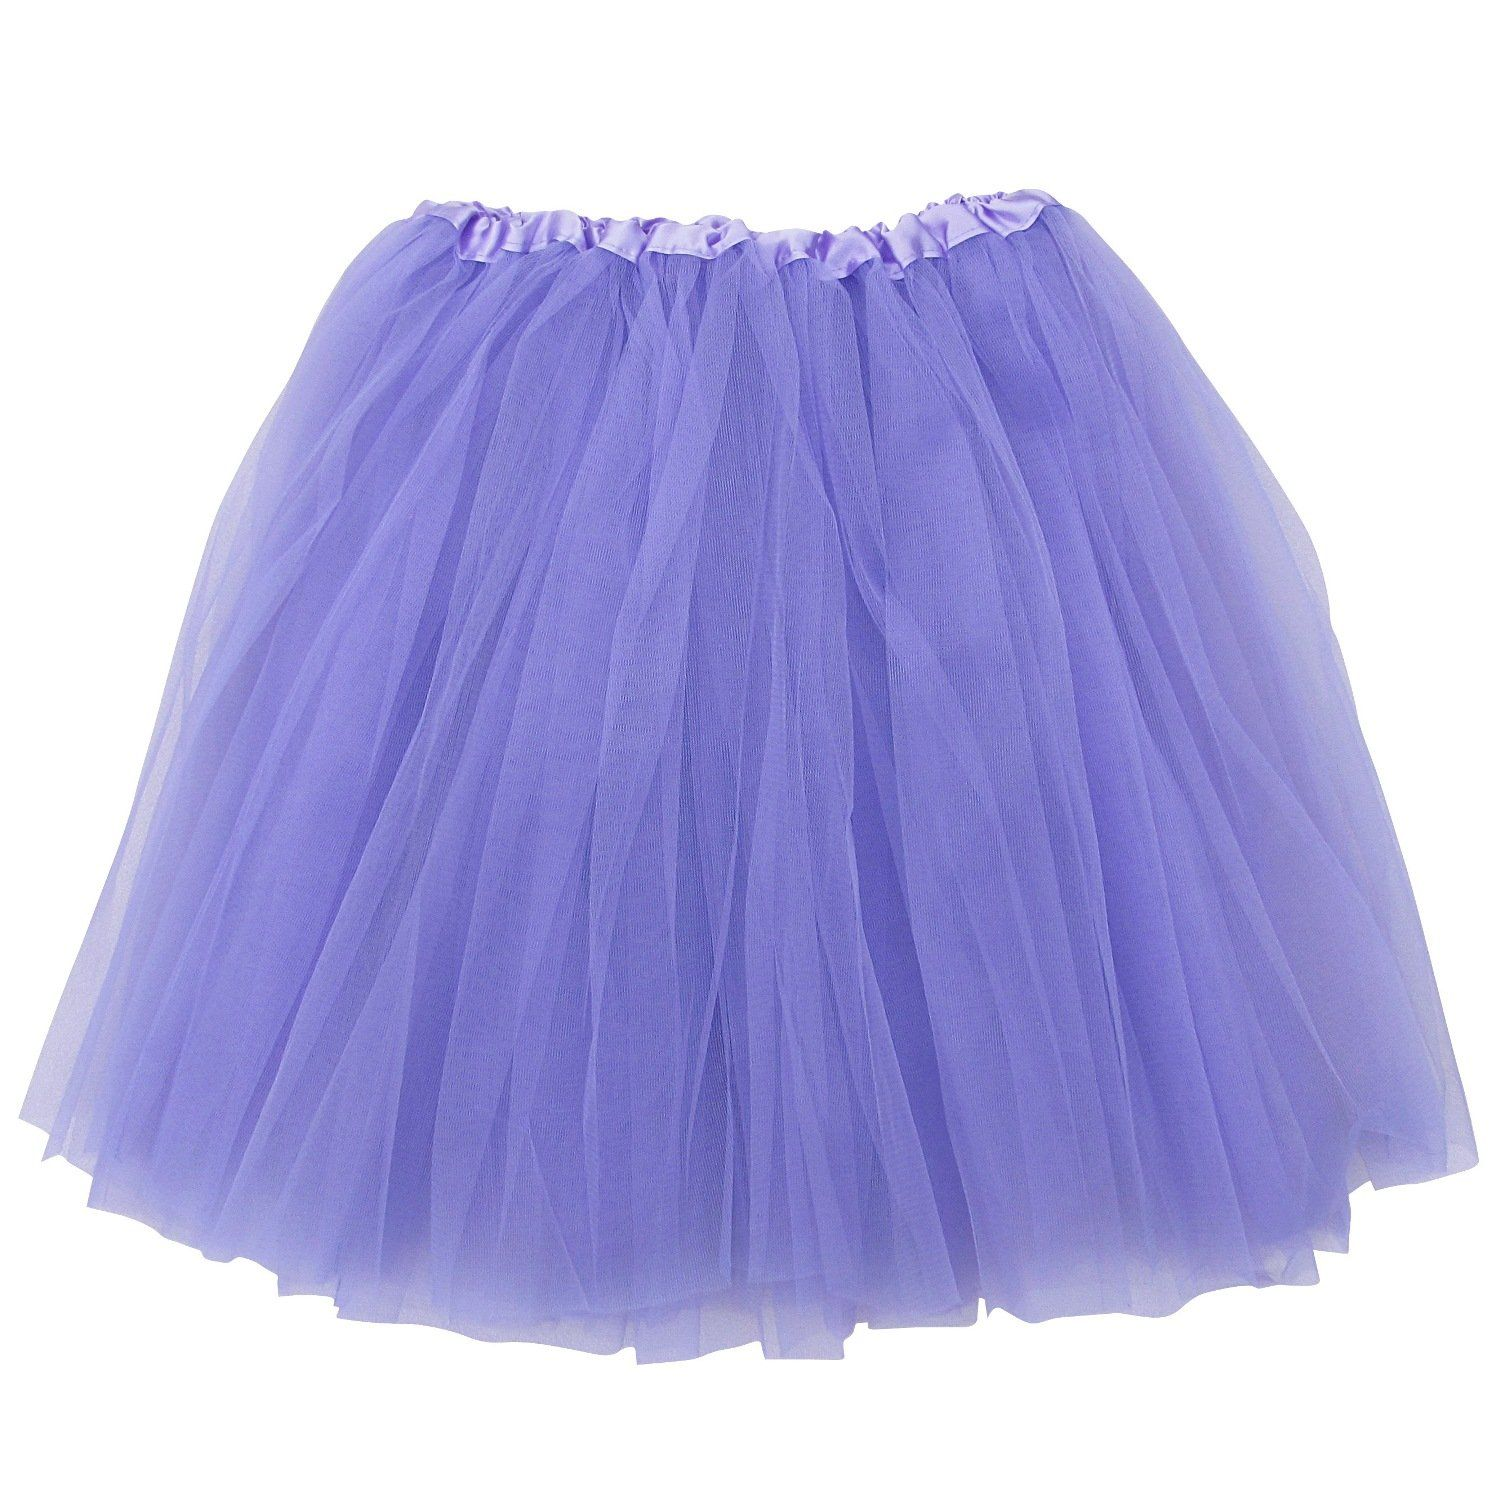 50aa45300 Lavender Plus Size Adult Tutu Skirt - Women's Plus Size 3- Layer ...